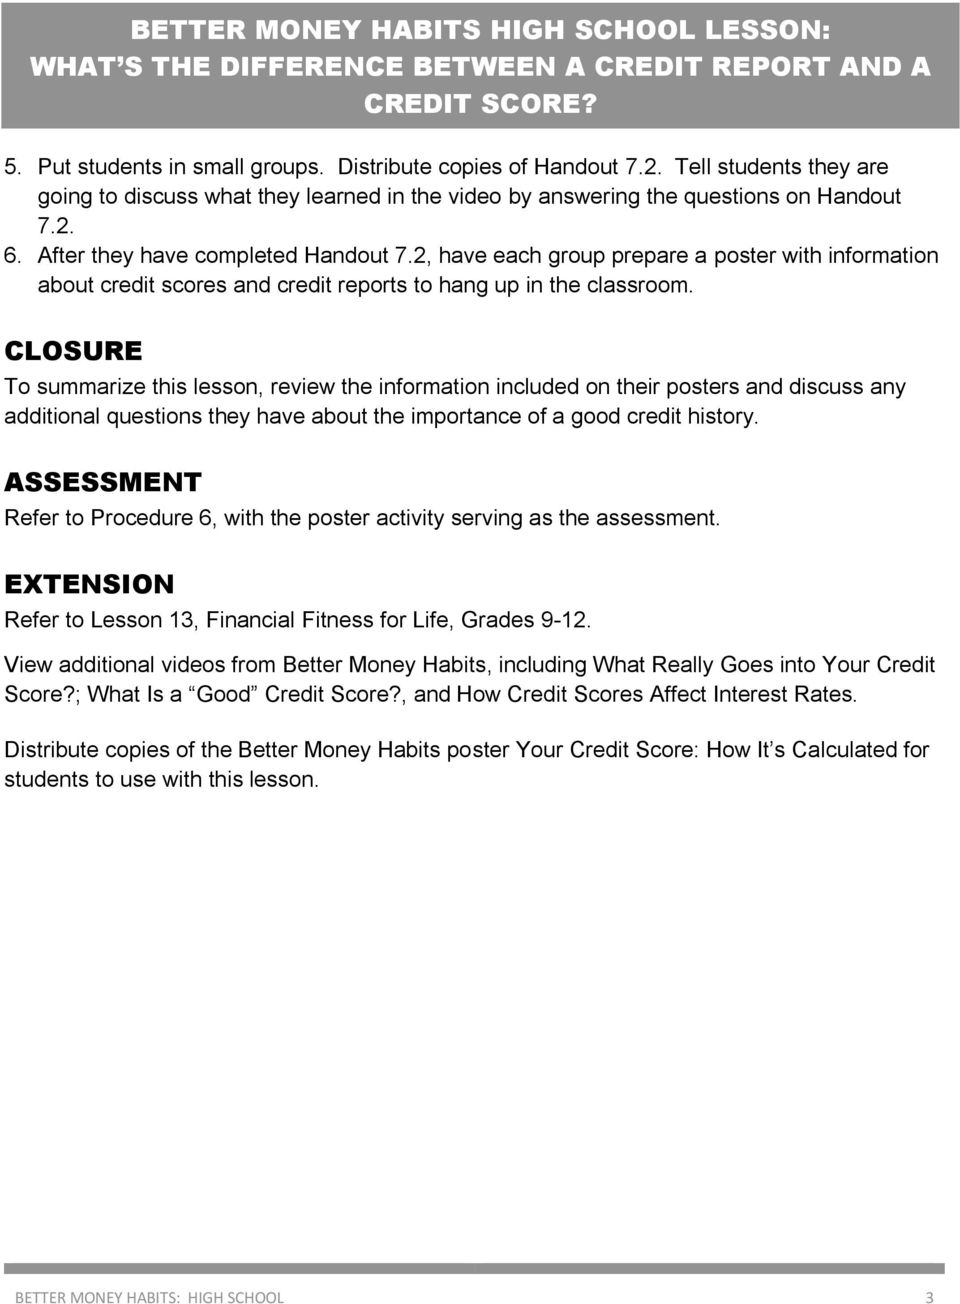 CLOSURE To summarize this lesson, review the information included on their posters and discuss any additional questions they have about the importance of a good credit history.